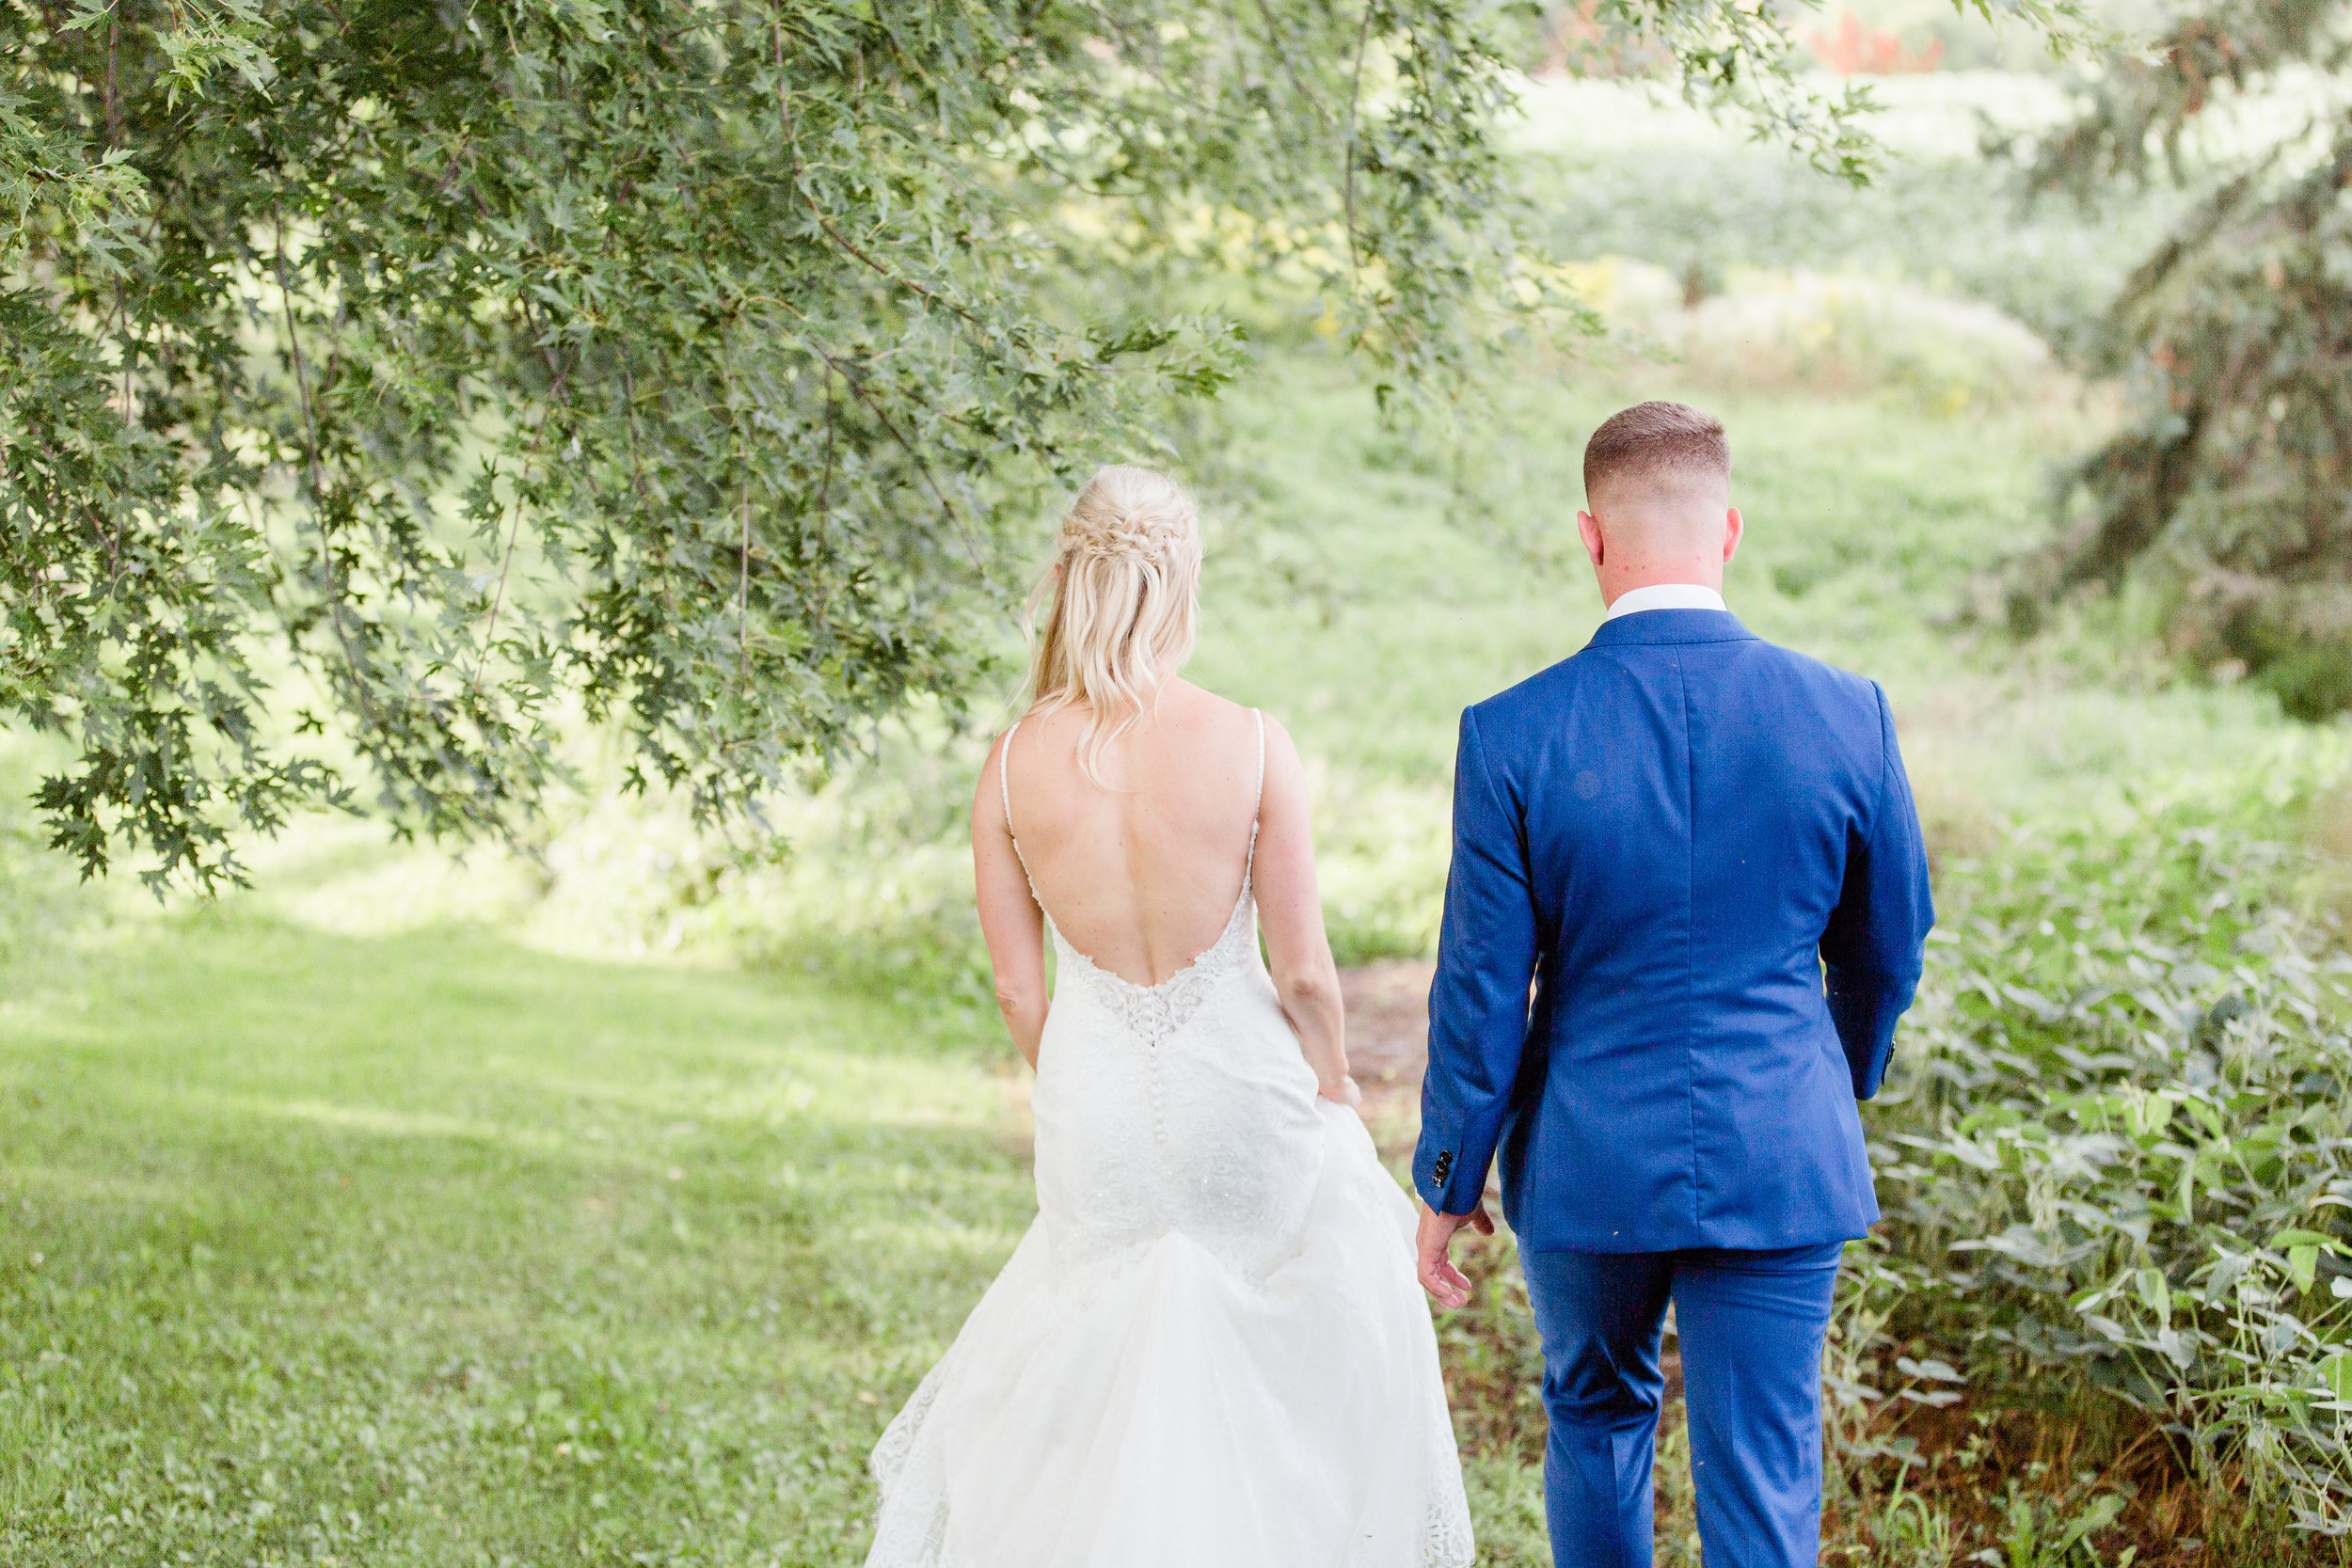 RobynMikeWedding_Evermore__StephanieMasonPhotography-605.jpg